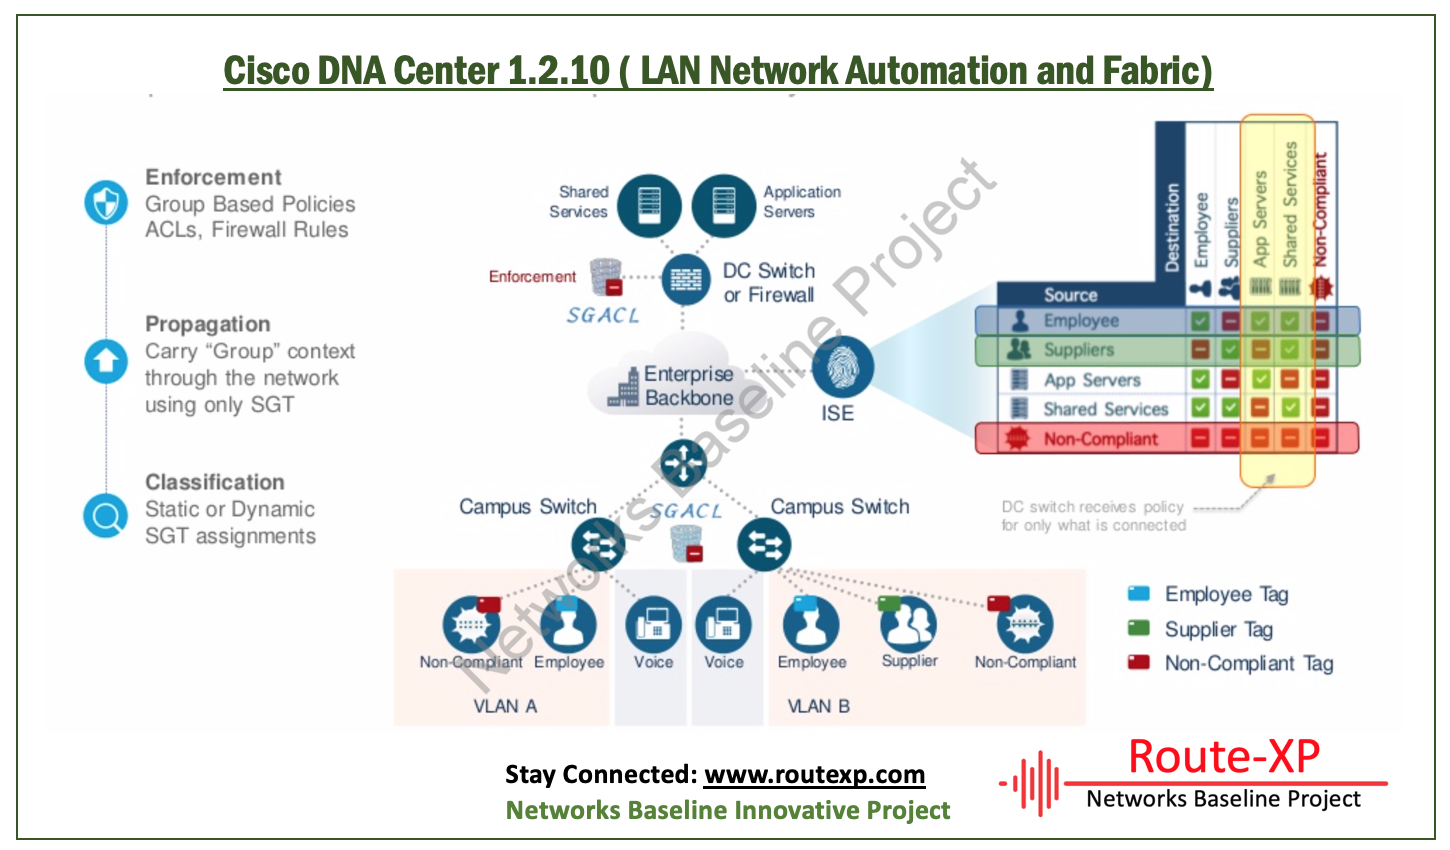 Cisco DNA Center Version 1 2 10 - Route XP Networks Private Limited